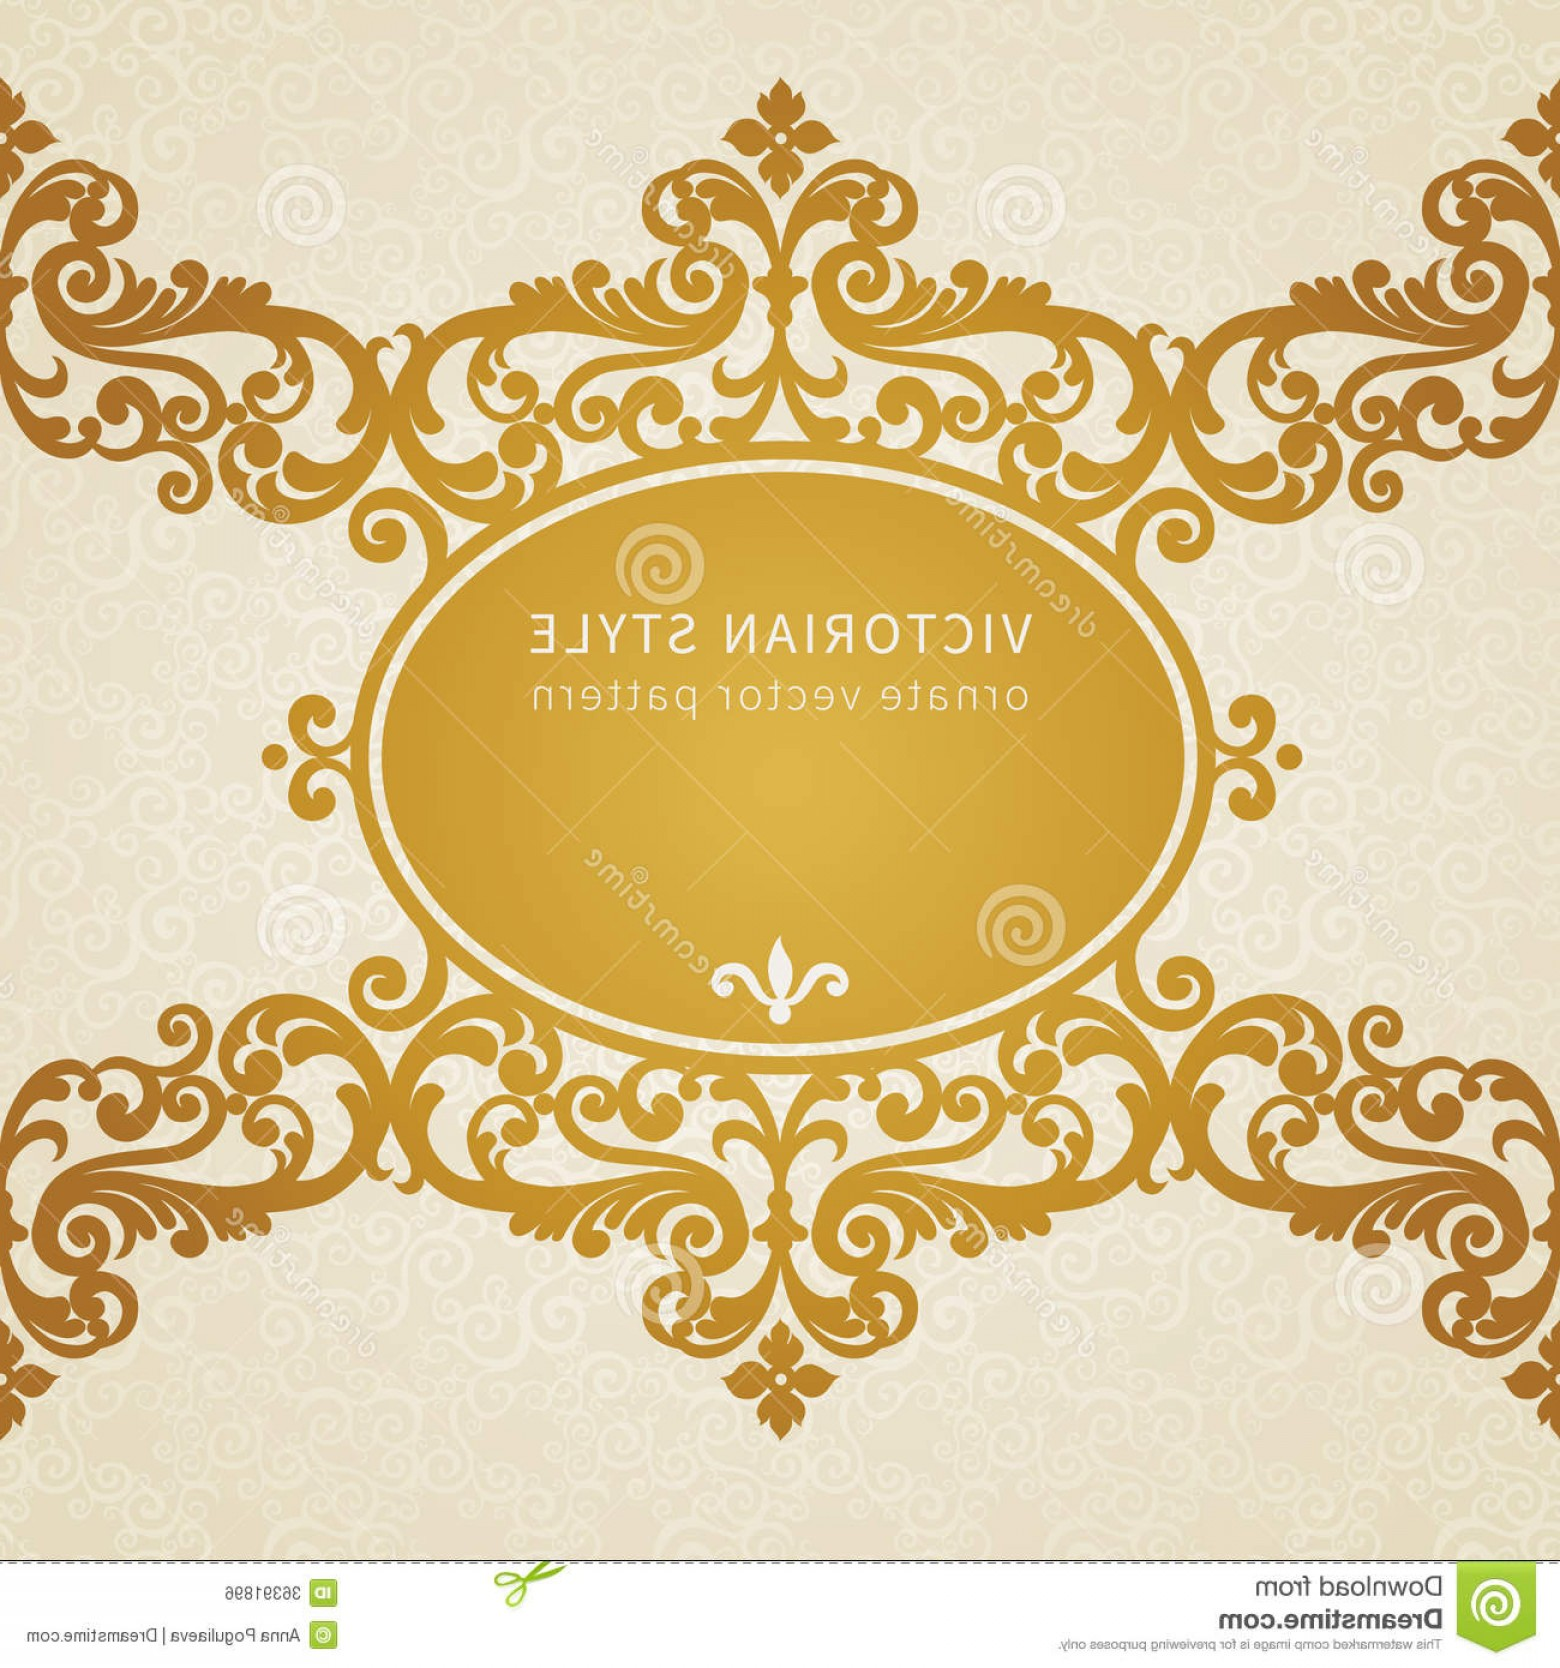 Victorian Style Frame Vector: Royalty Free Stock Image Vector Baroque Frame Victorian Style Element Design You Can Place Text Empty Can Be Used Decorating Image